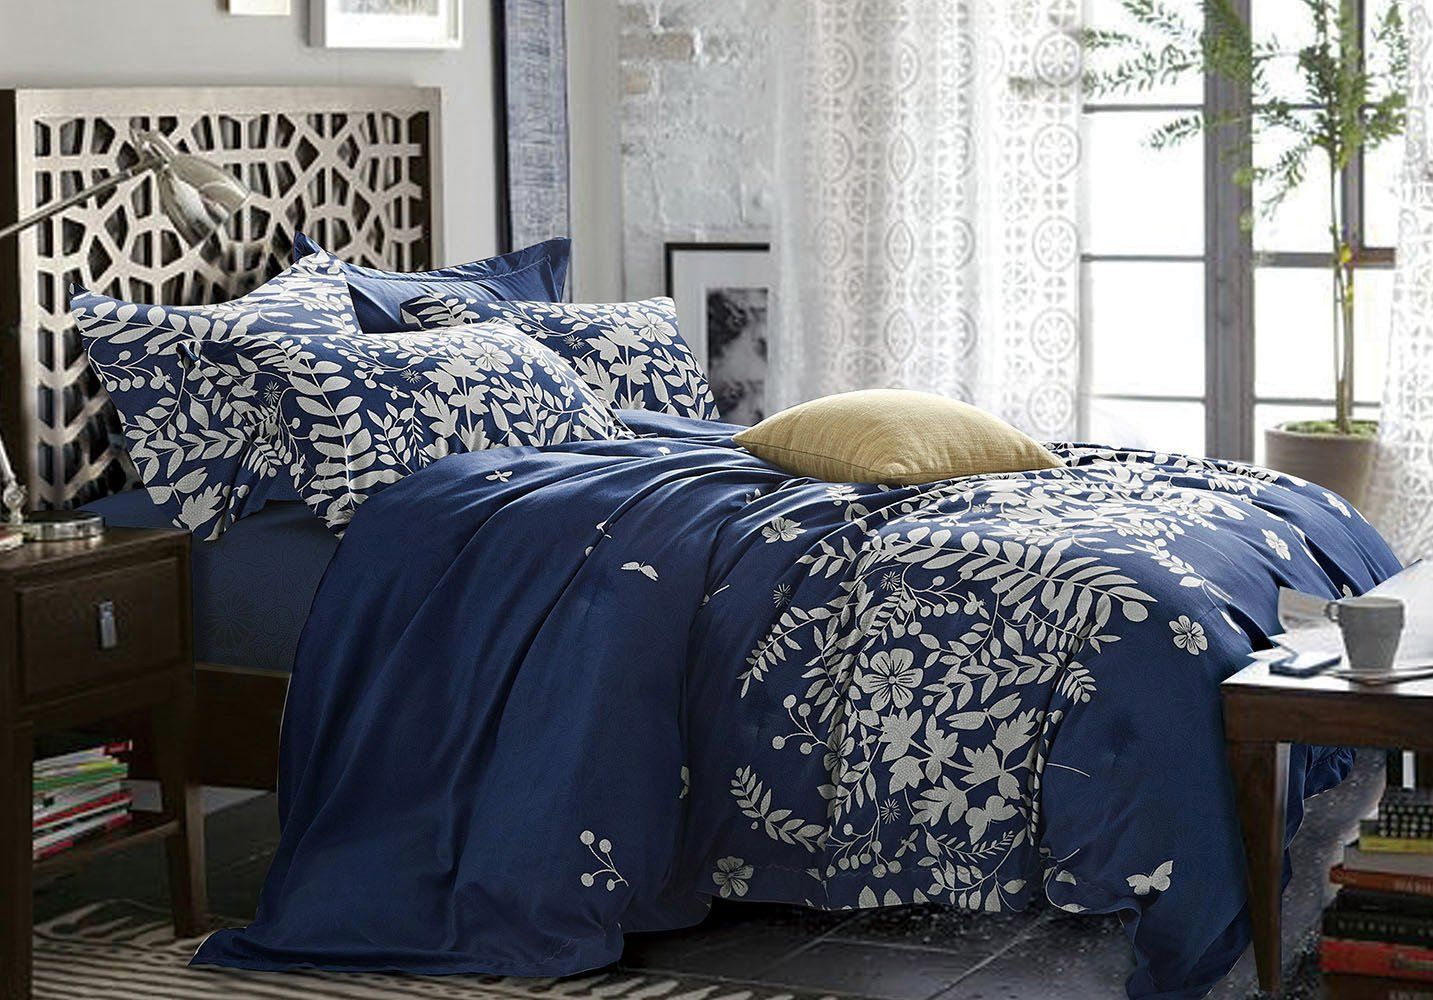 Navy Blue Comforter Set Queen 3piece Gray Floral And Tree Leaves Pattern Printed Soft Microfibe Navy Blue Duvet Cover Blue Duvet Cover Navy Blue Comforter Sets